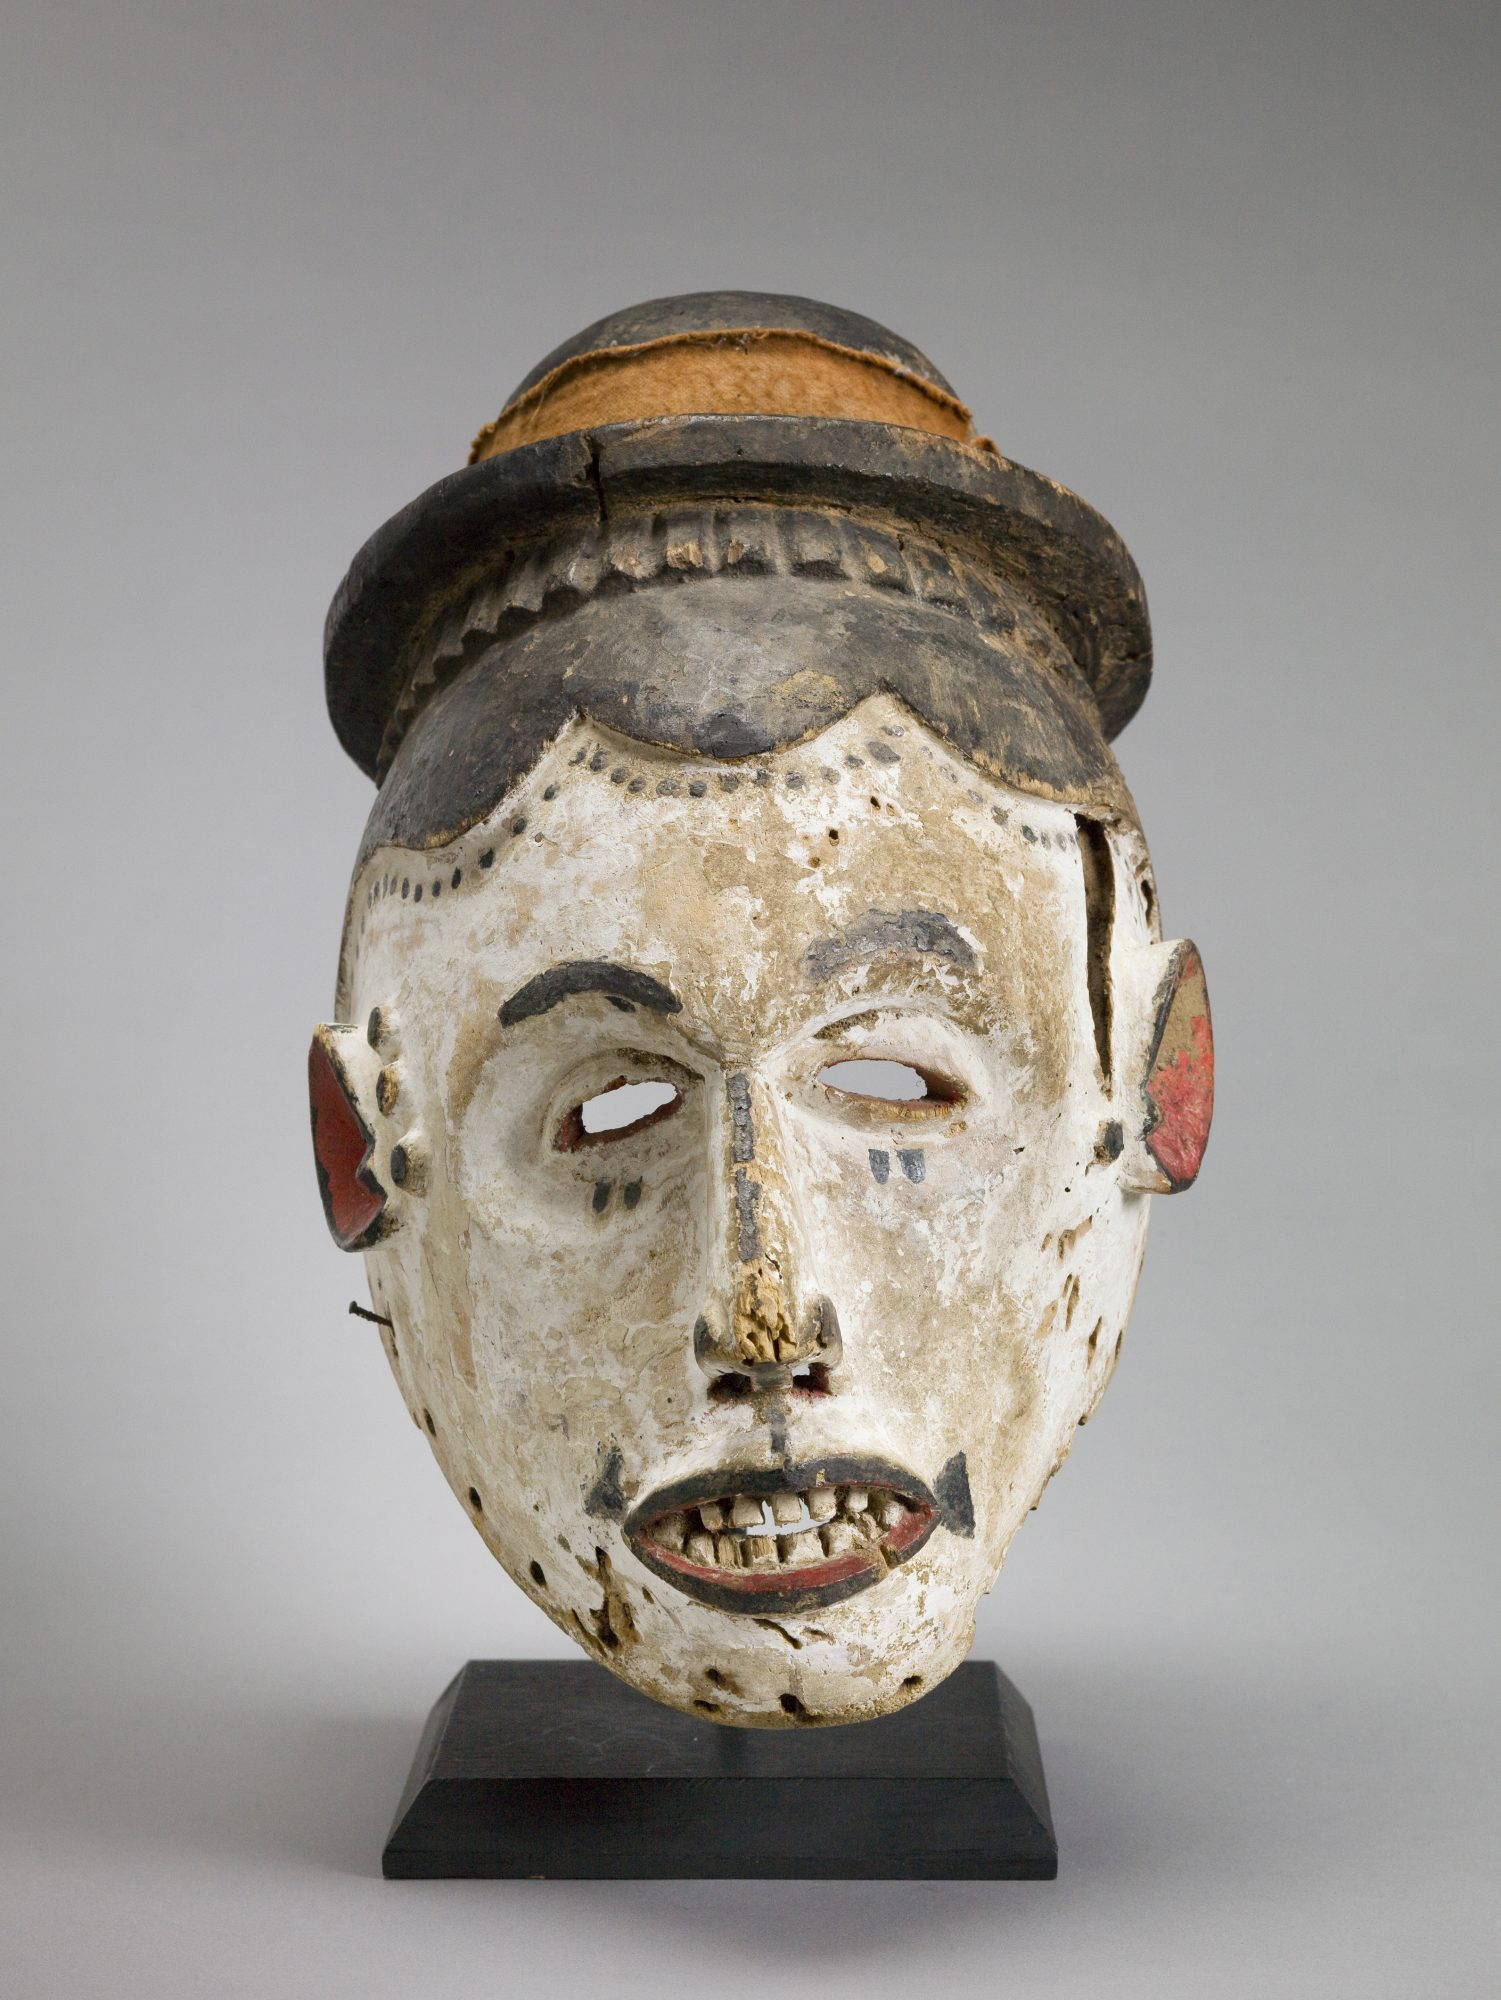 Igbo People, Helmet Mask, 20th Century, wood, pigment, and cloth. Gift of Robert and Suzanne Bach.